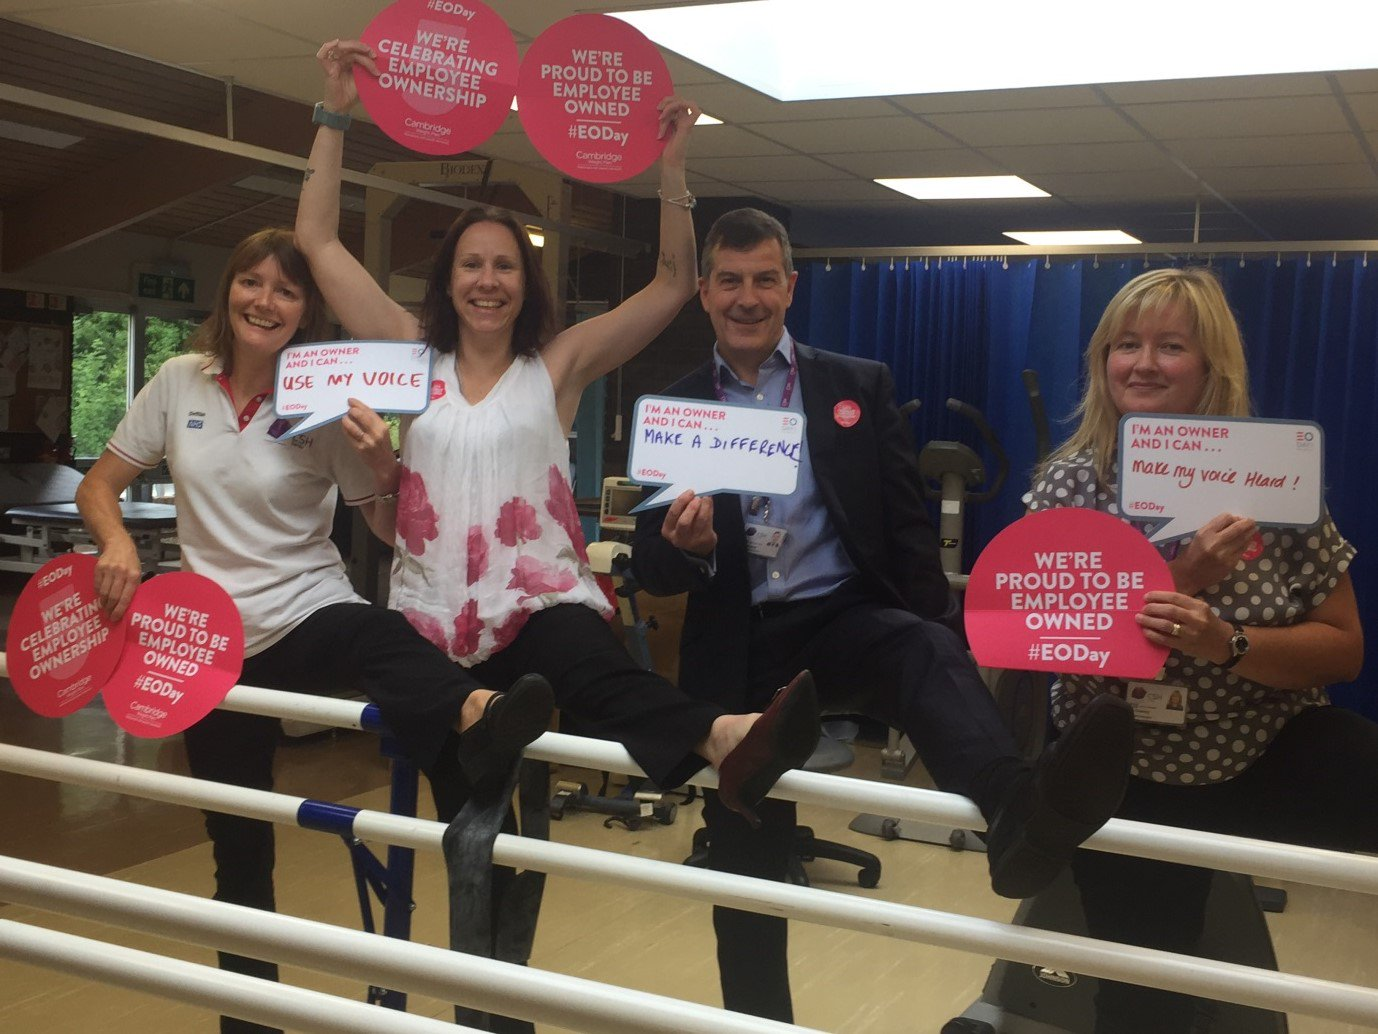 More #EODay fun and celebrations https://t.co/MReeycWS4h